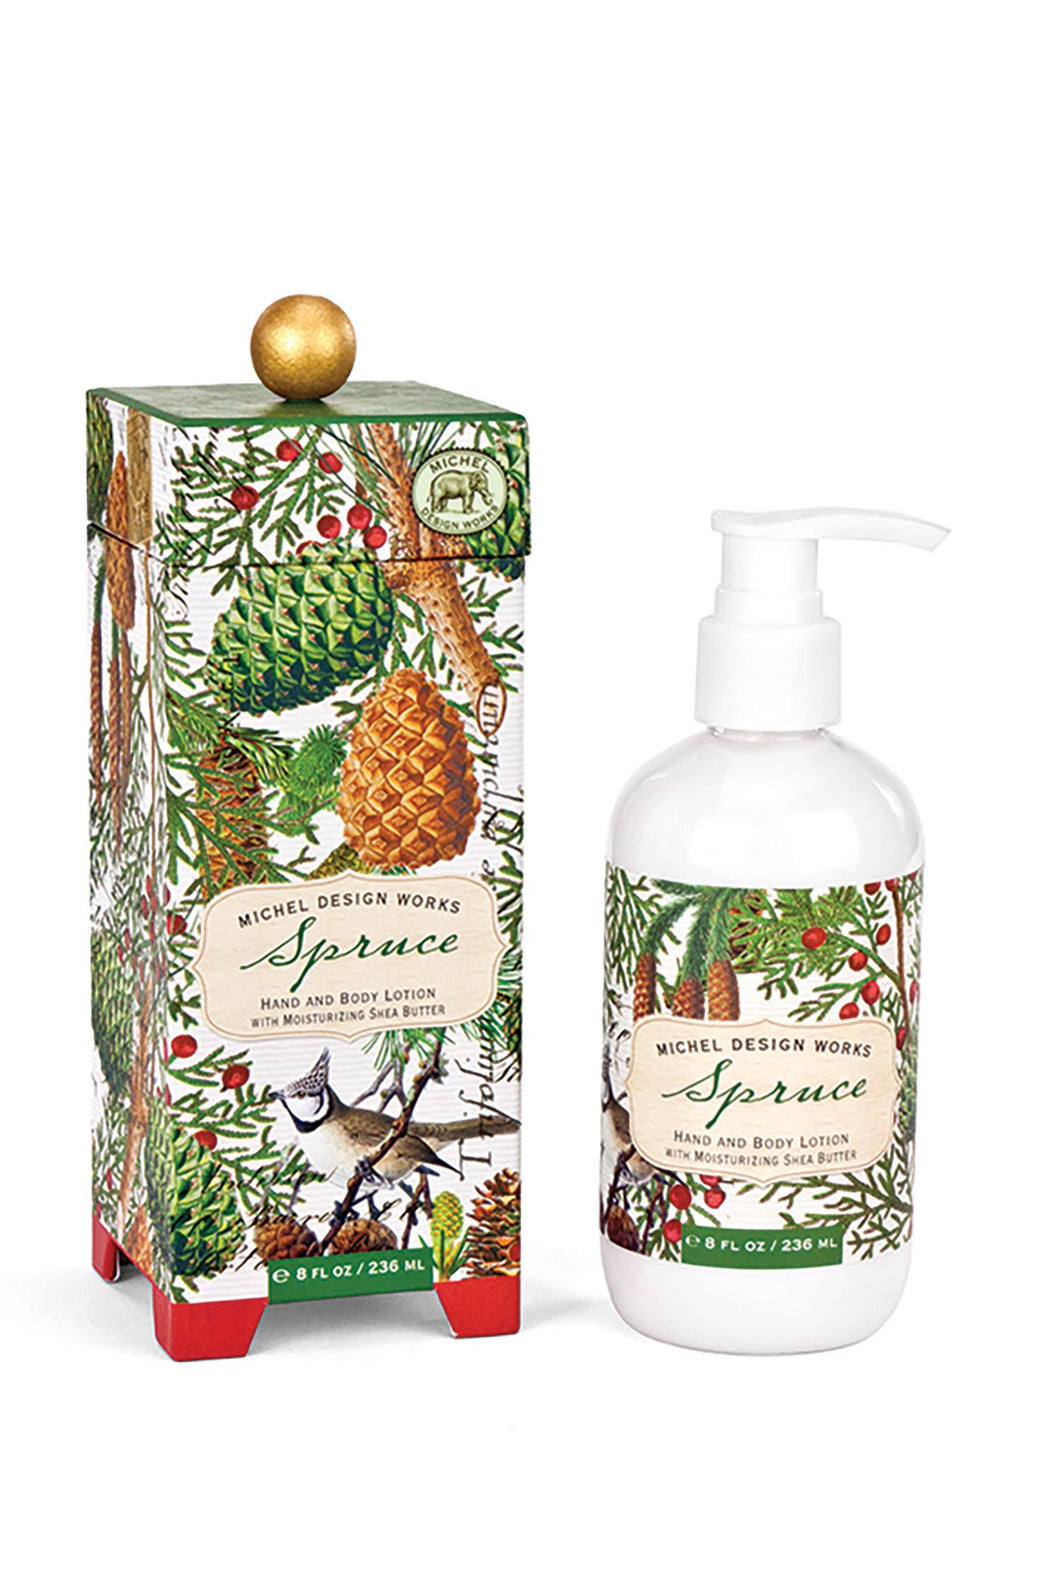 Hand Lotion Spruce